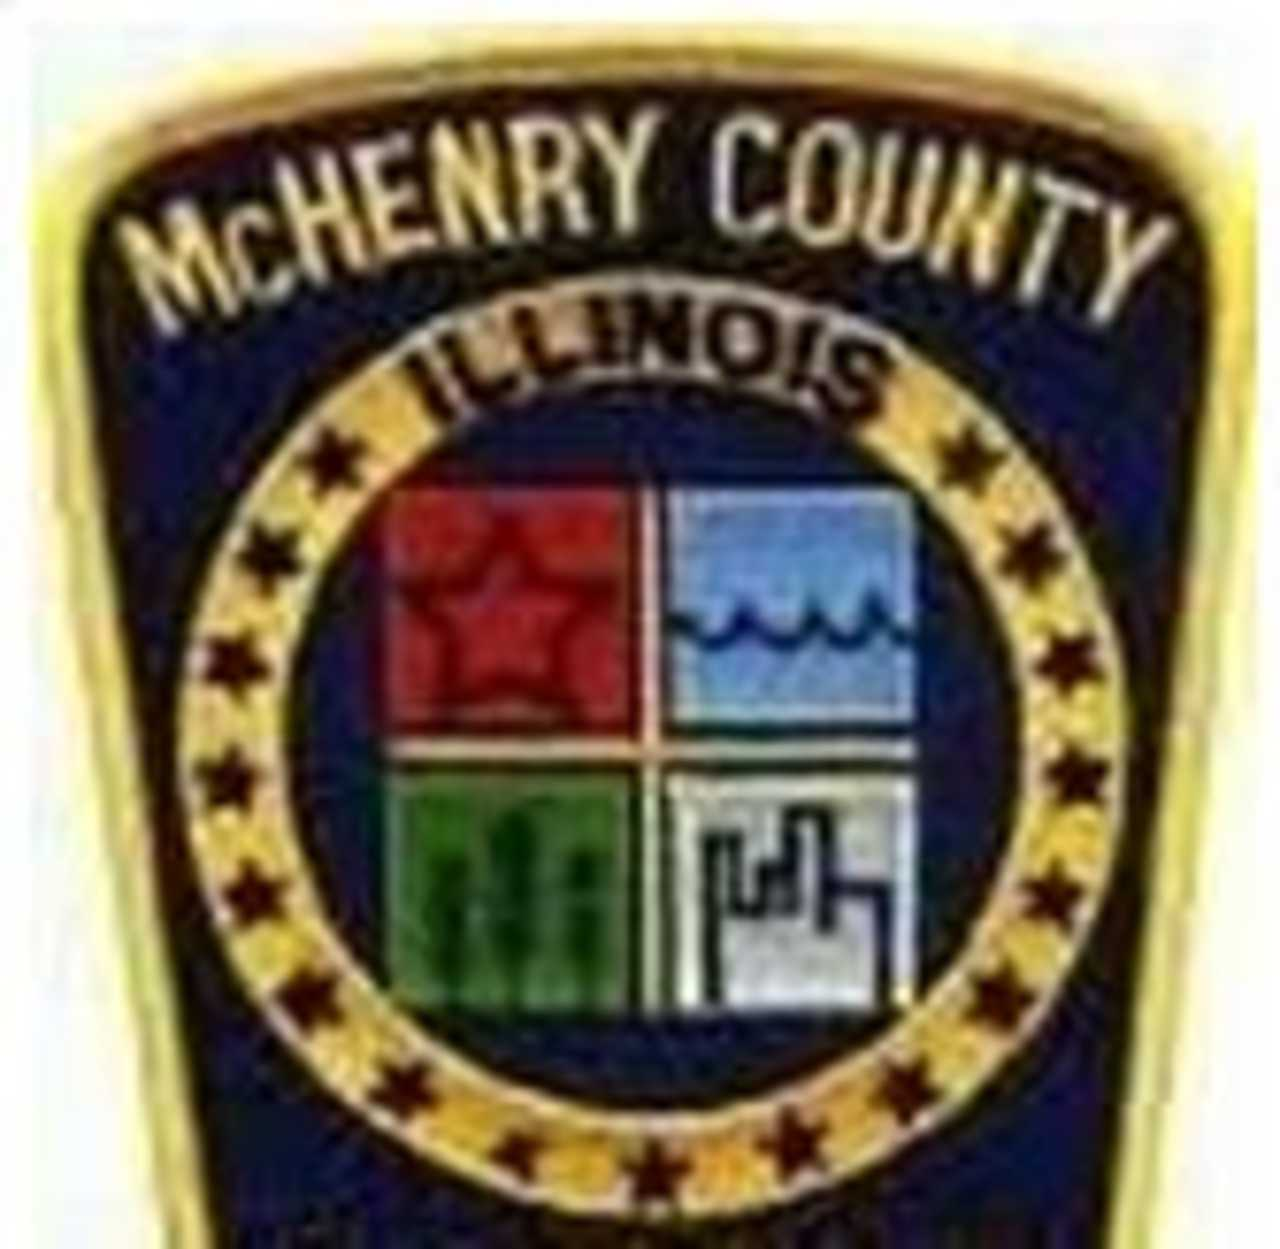 Mchenry County Sheriff's - Public Services - Political Organization in  Woodstock IL